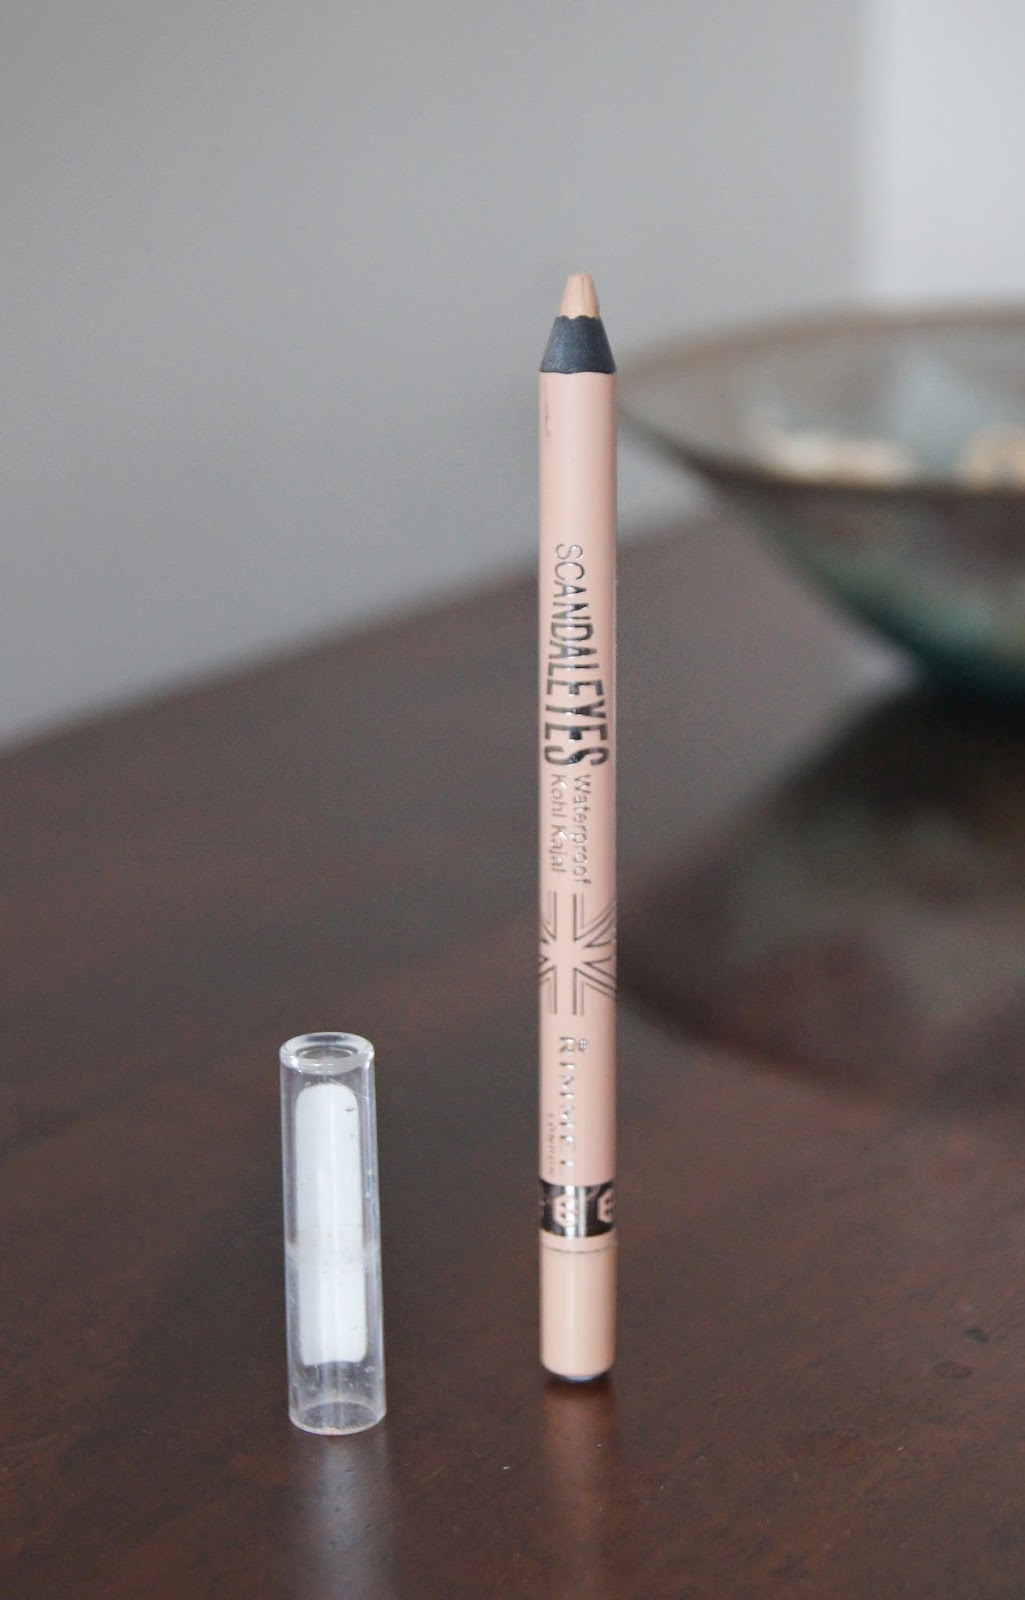 rimmel nude scandaleyes waterproof kohl kajal eyeliner review